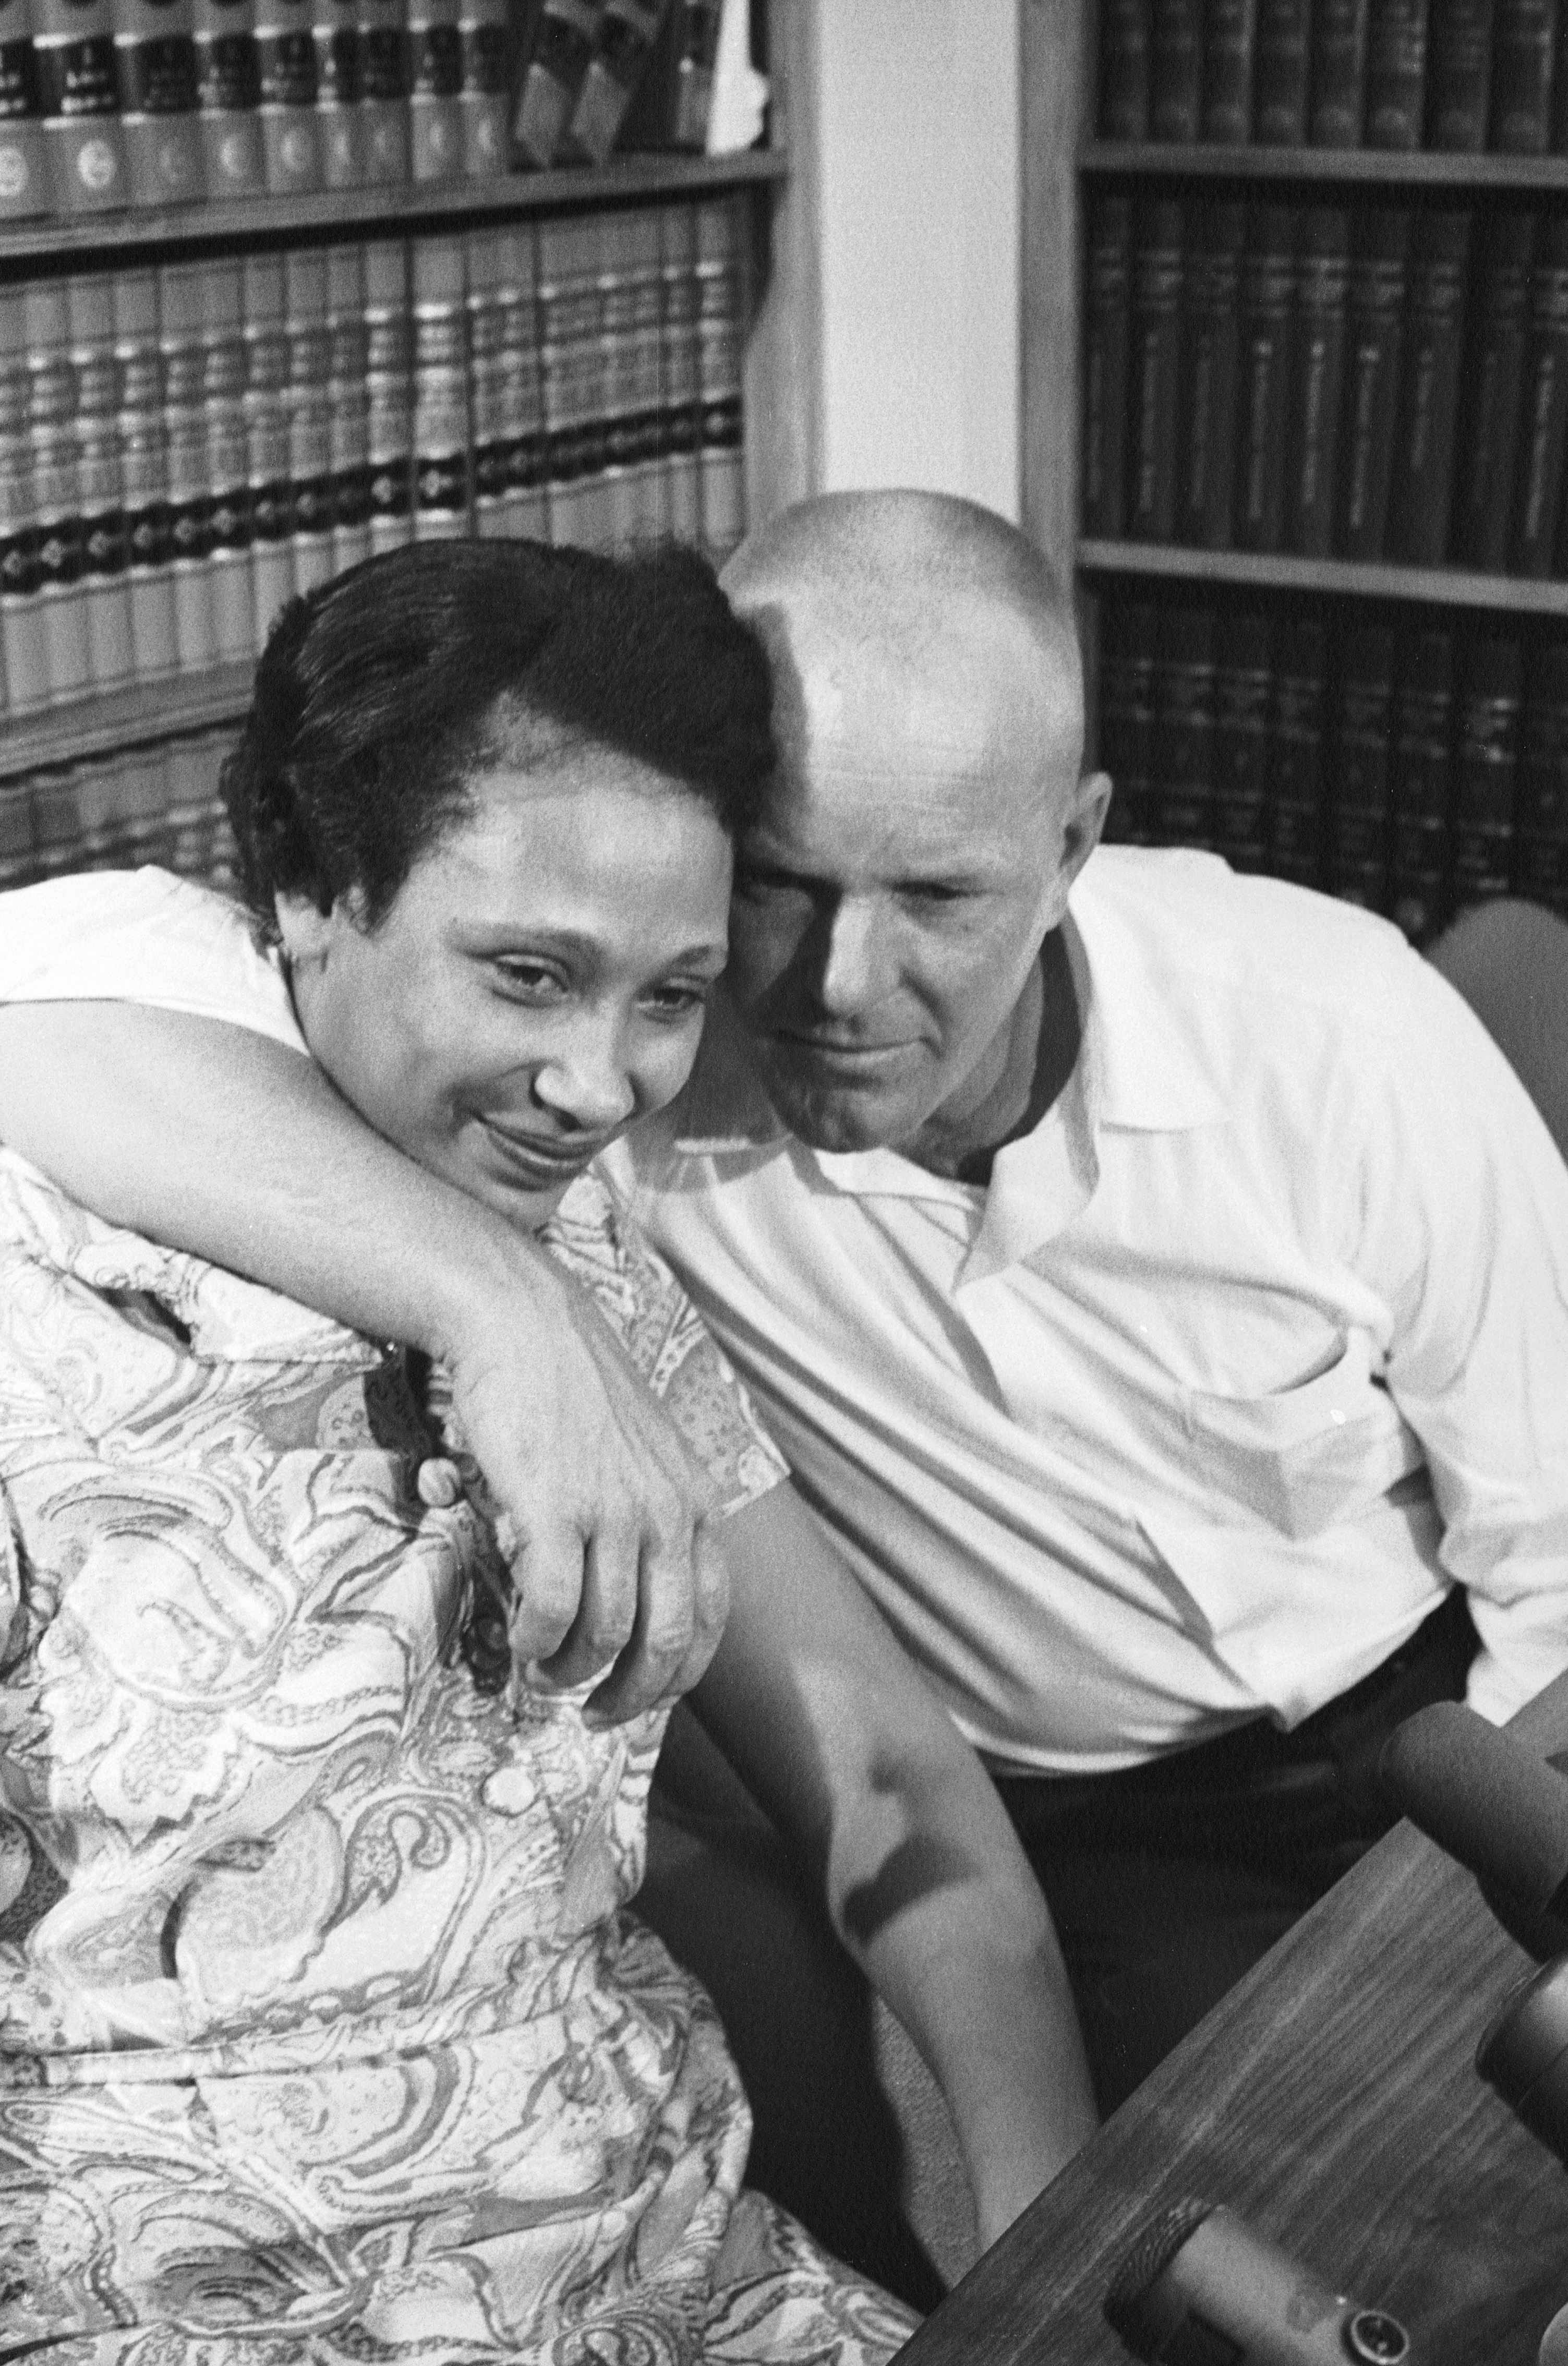 Impossible. 1967 interracial law marriage overturned